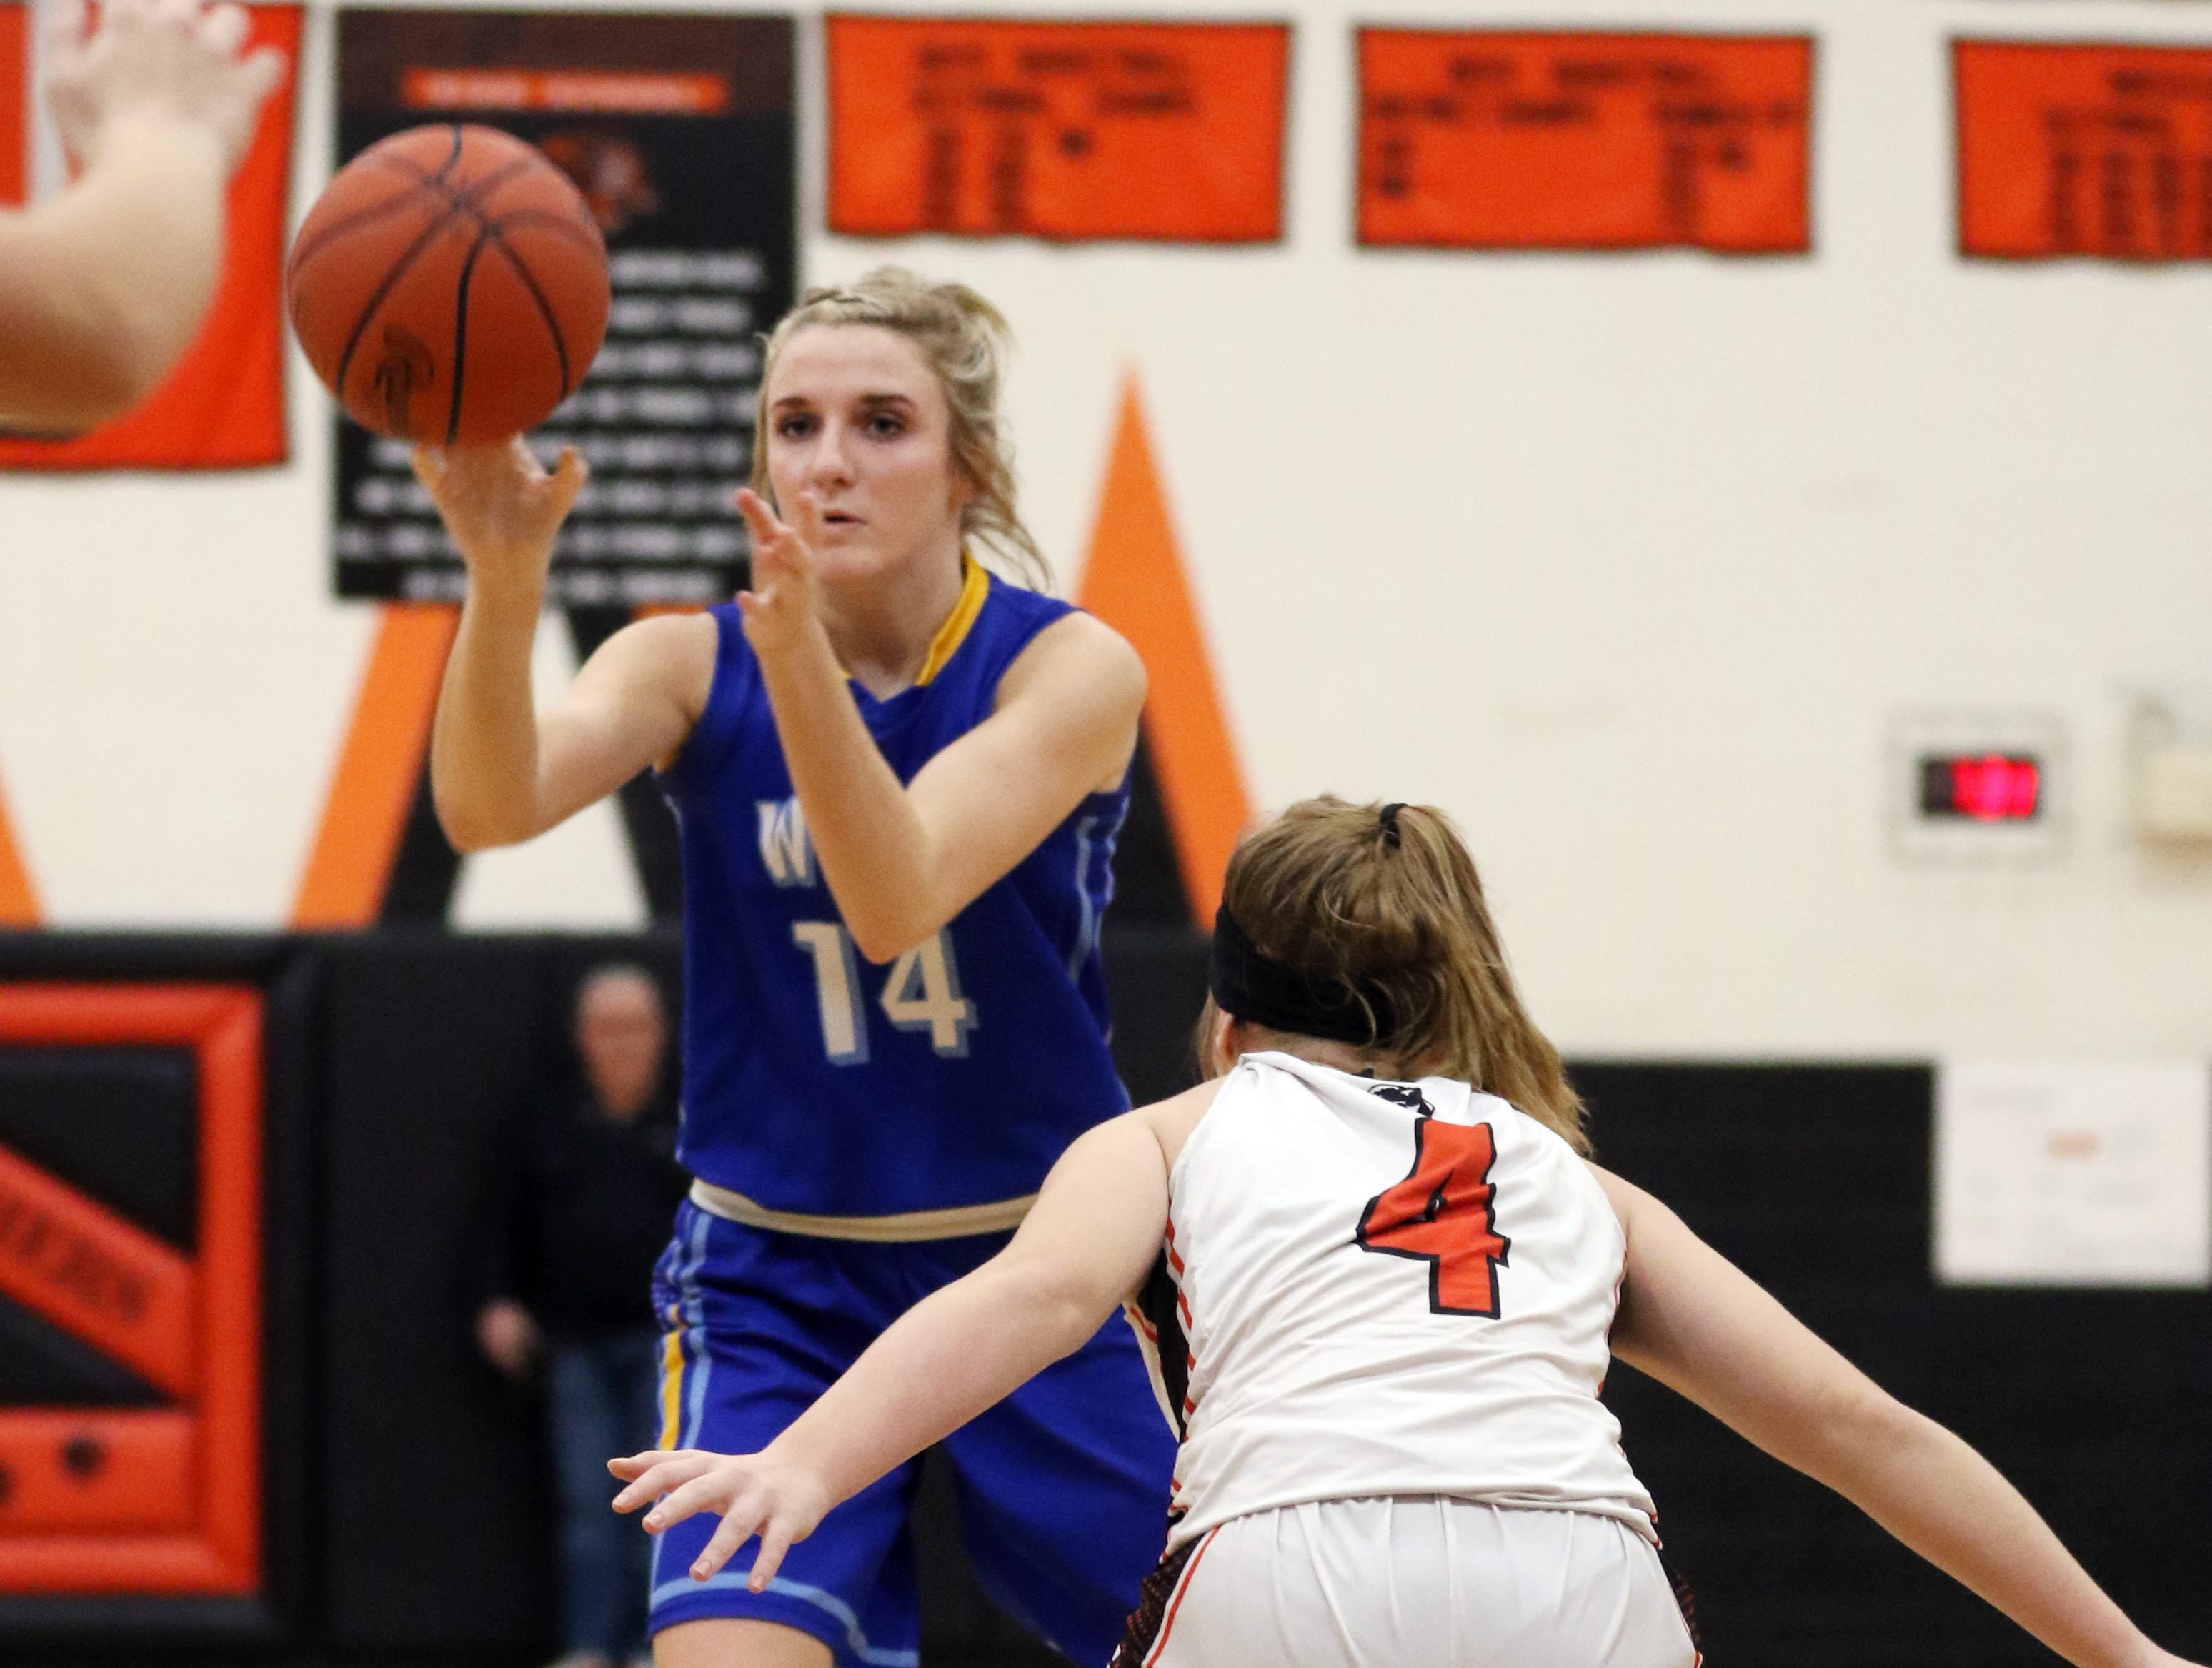 West Muskingum's Hayley Barker passes the ball against New Lexington.